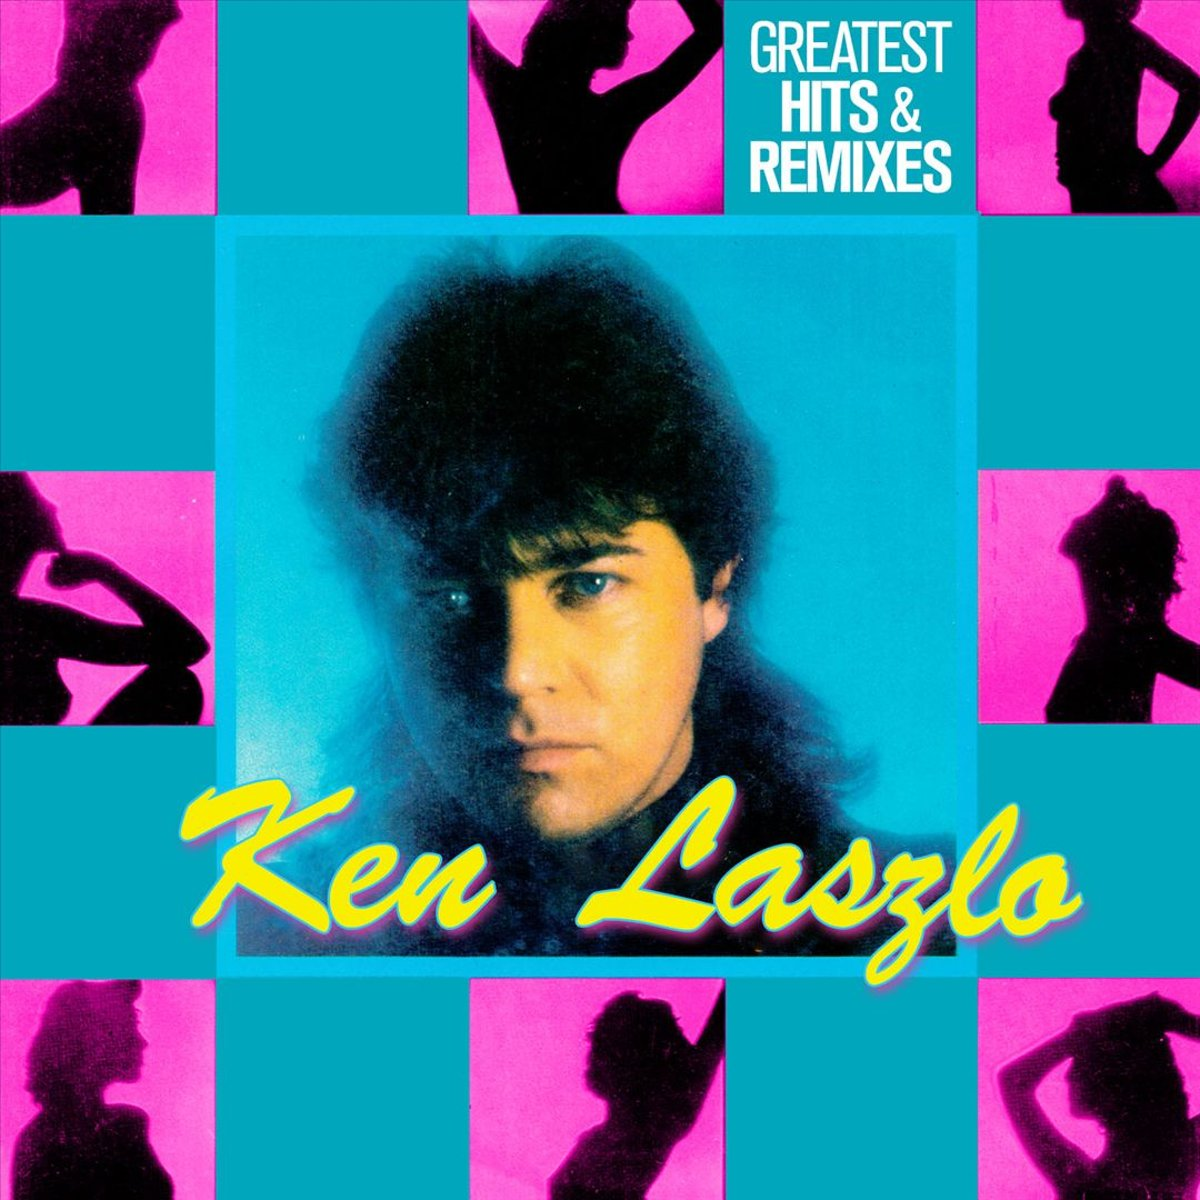 Кен Лацло Ken Laszlo. Greatest Hits & Remixes (LP) nina dj bobo sin with sebastian londonbeat haddaway mr president pandera bad boys blue пэтти райан кен лацло золото дискотек лучшие танцевальные хиты 80х 90х часть 2 mp3